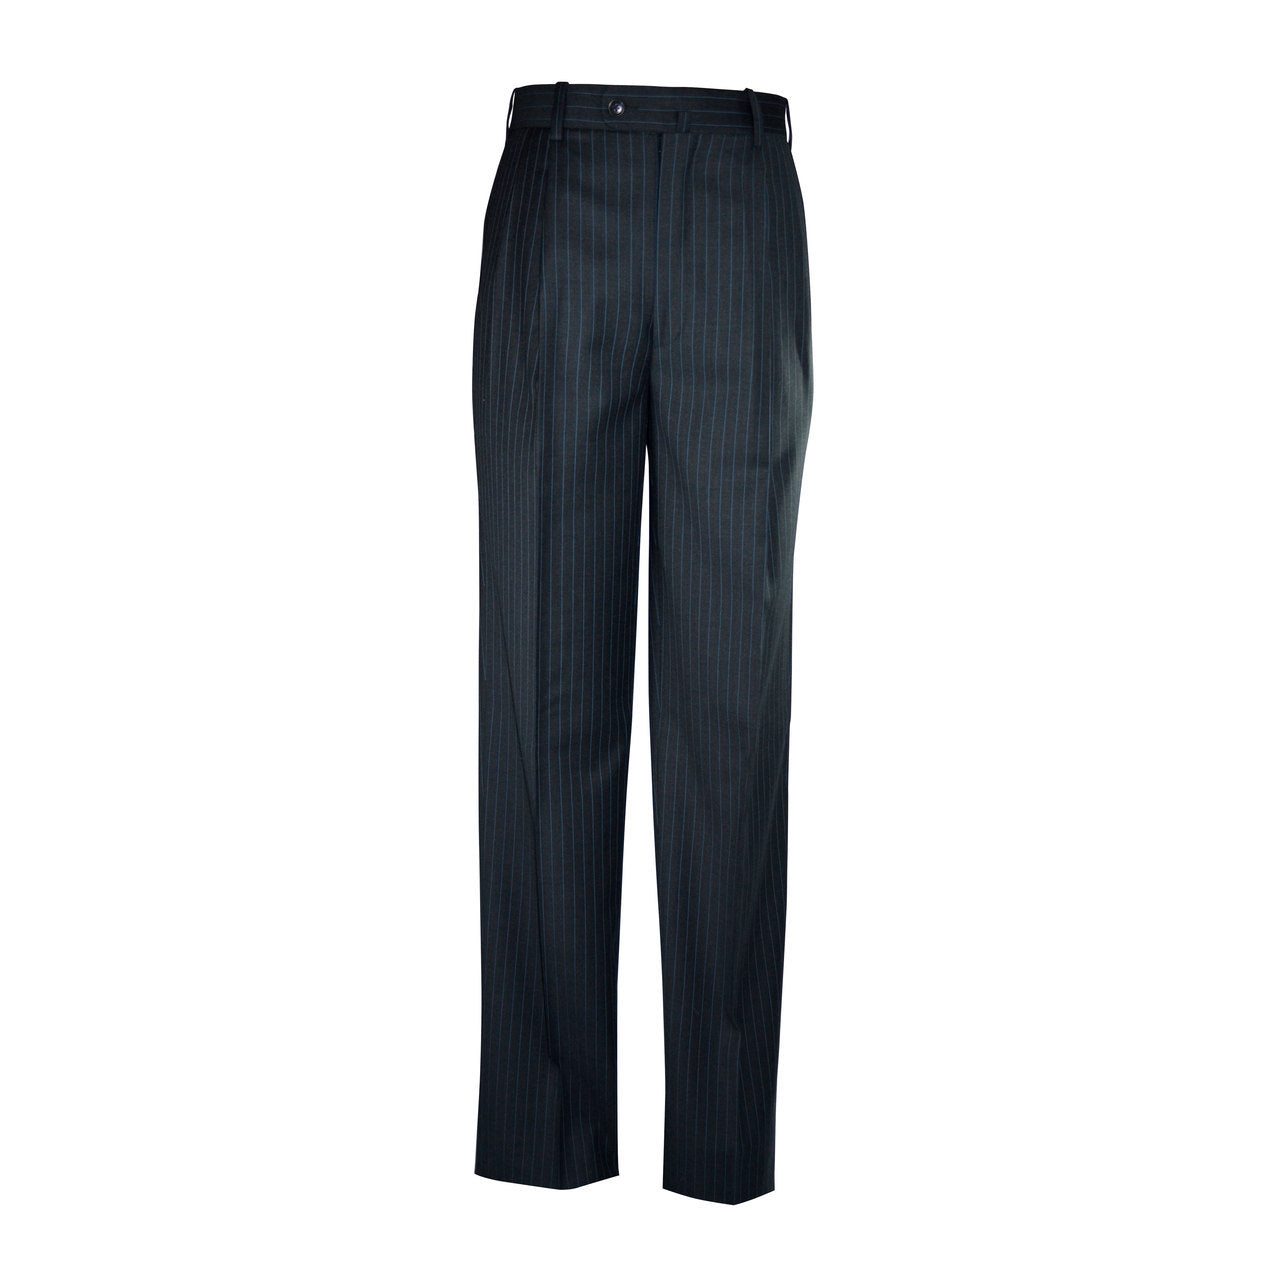 Newport Pleated Front Trouser - Charcoal